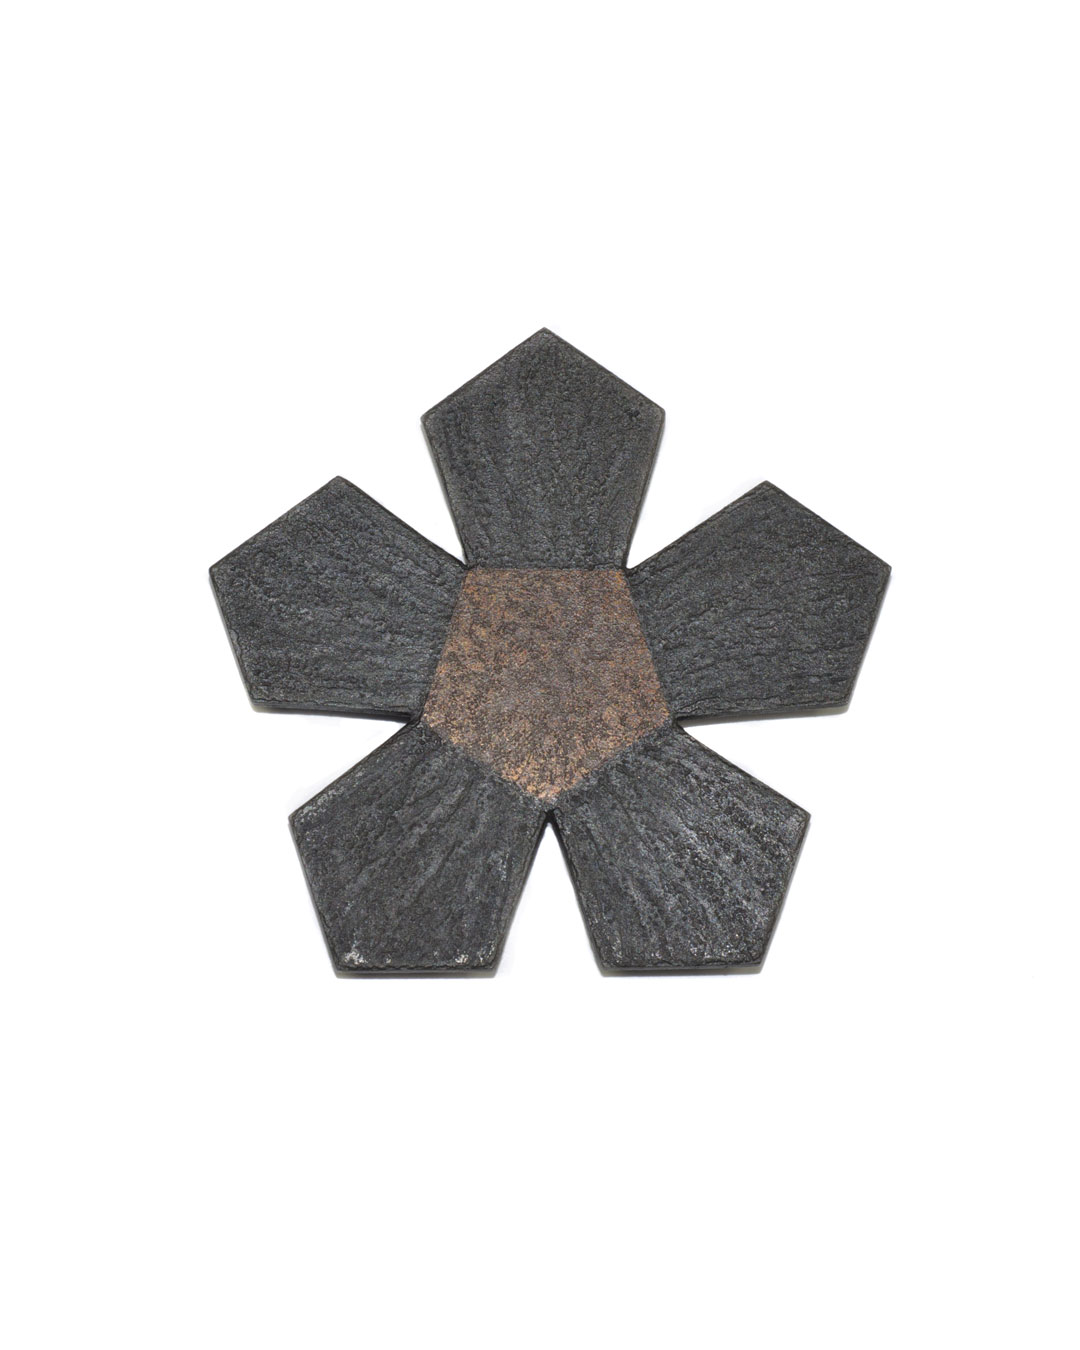 Tore Svensson, Pentagon, 2008, brooch; etched steel, partly gilt, 64 x 64 x 1.5 mm, €425